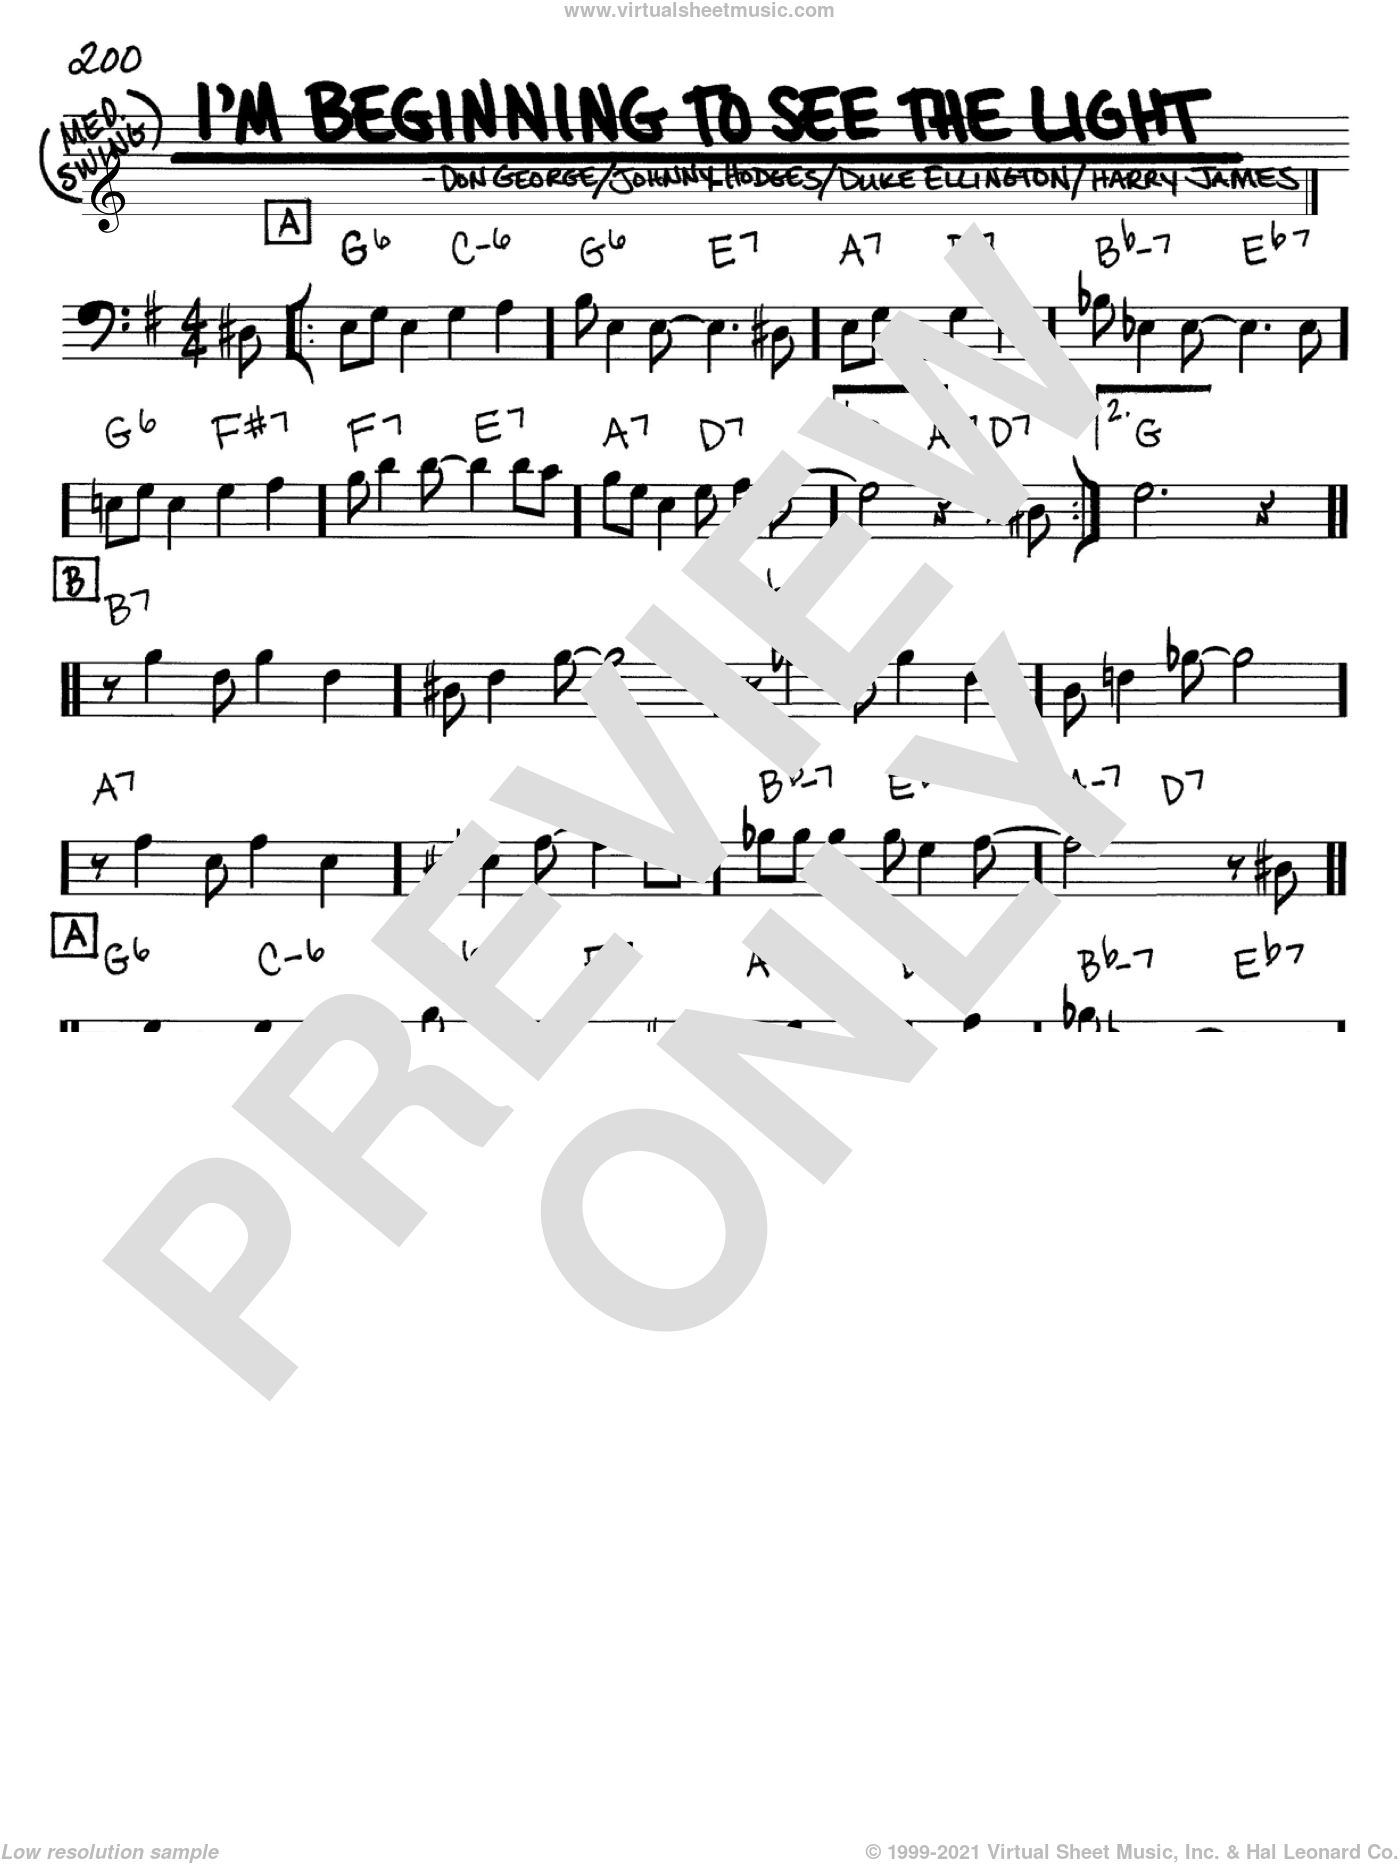 I'm Beginning To See The Light sheet music for voice and other instruments (Bass Clef ) by Johnny Hodges, Don George, Duke Ellington and Harry James. Score Image Preview.